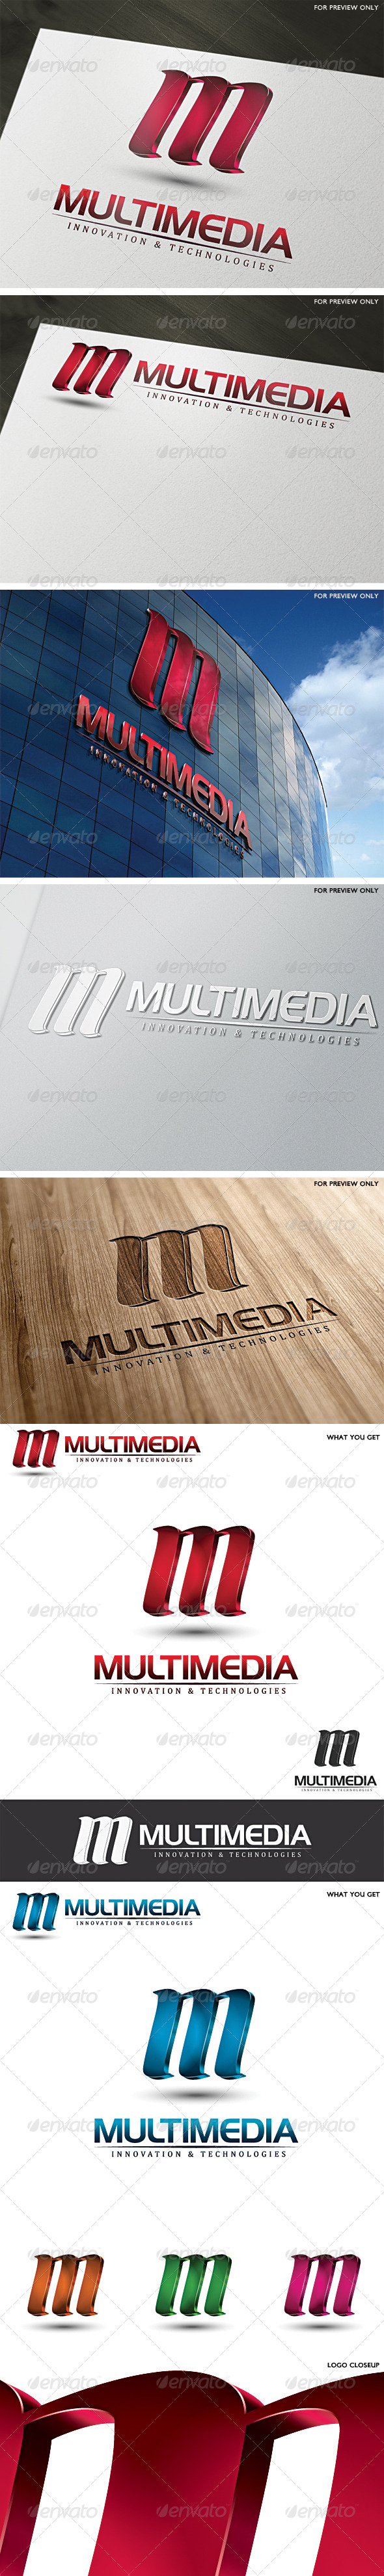 GraphicRiver 3D Multimedia Letter M Logo Template 4799881